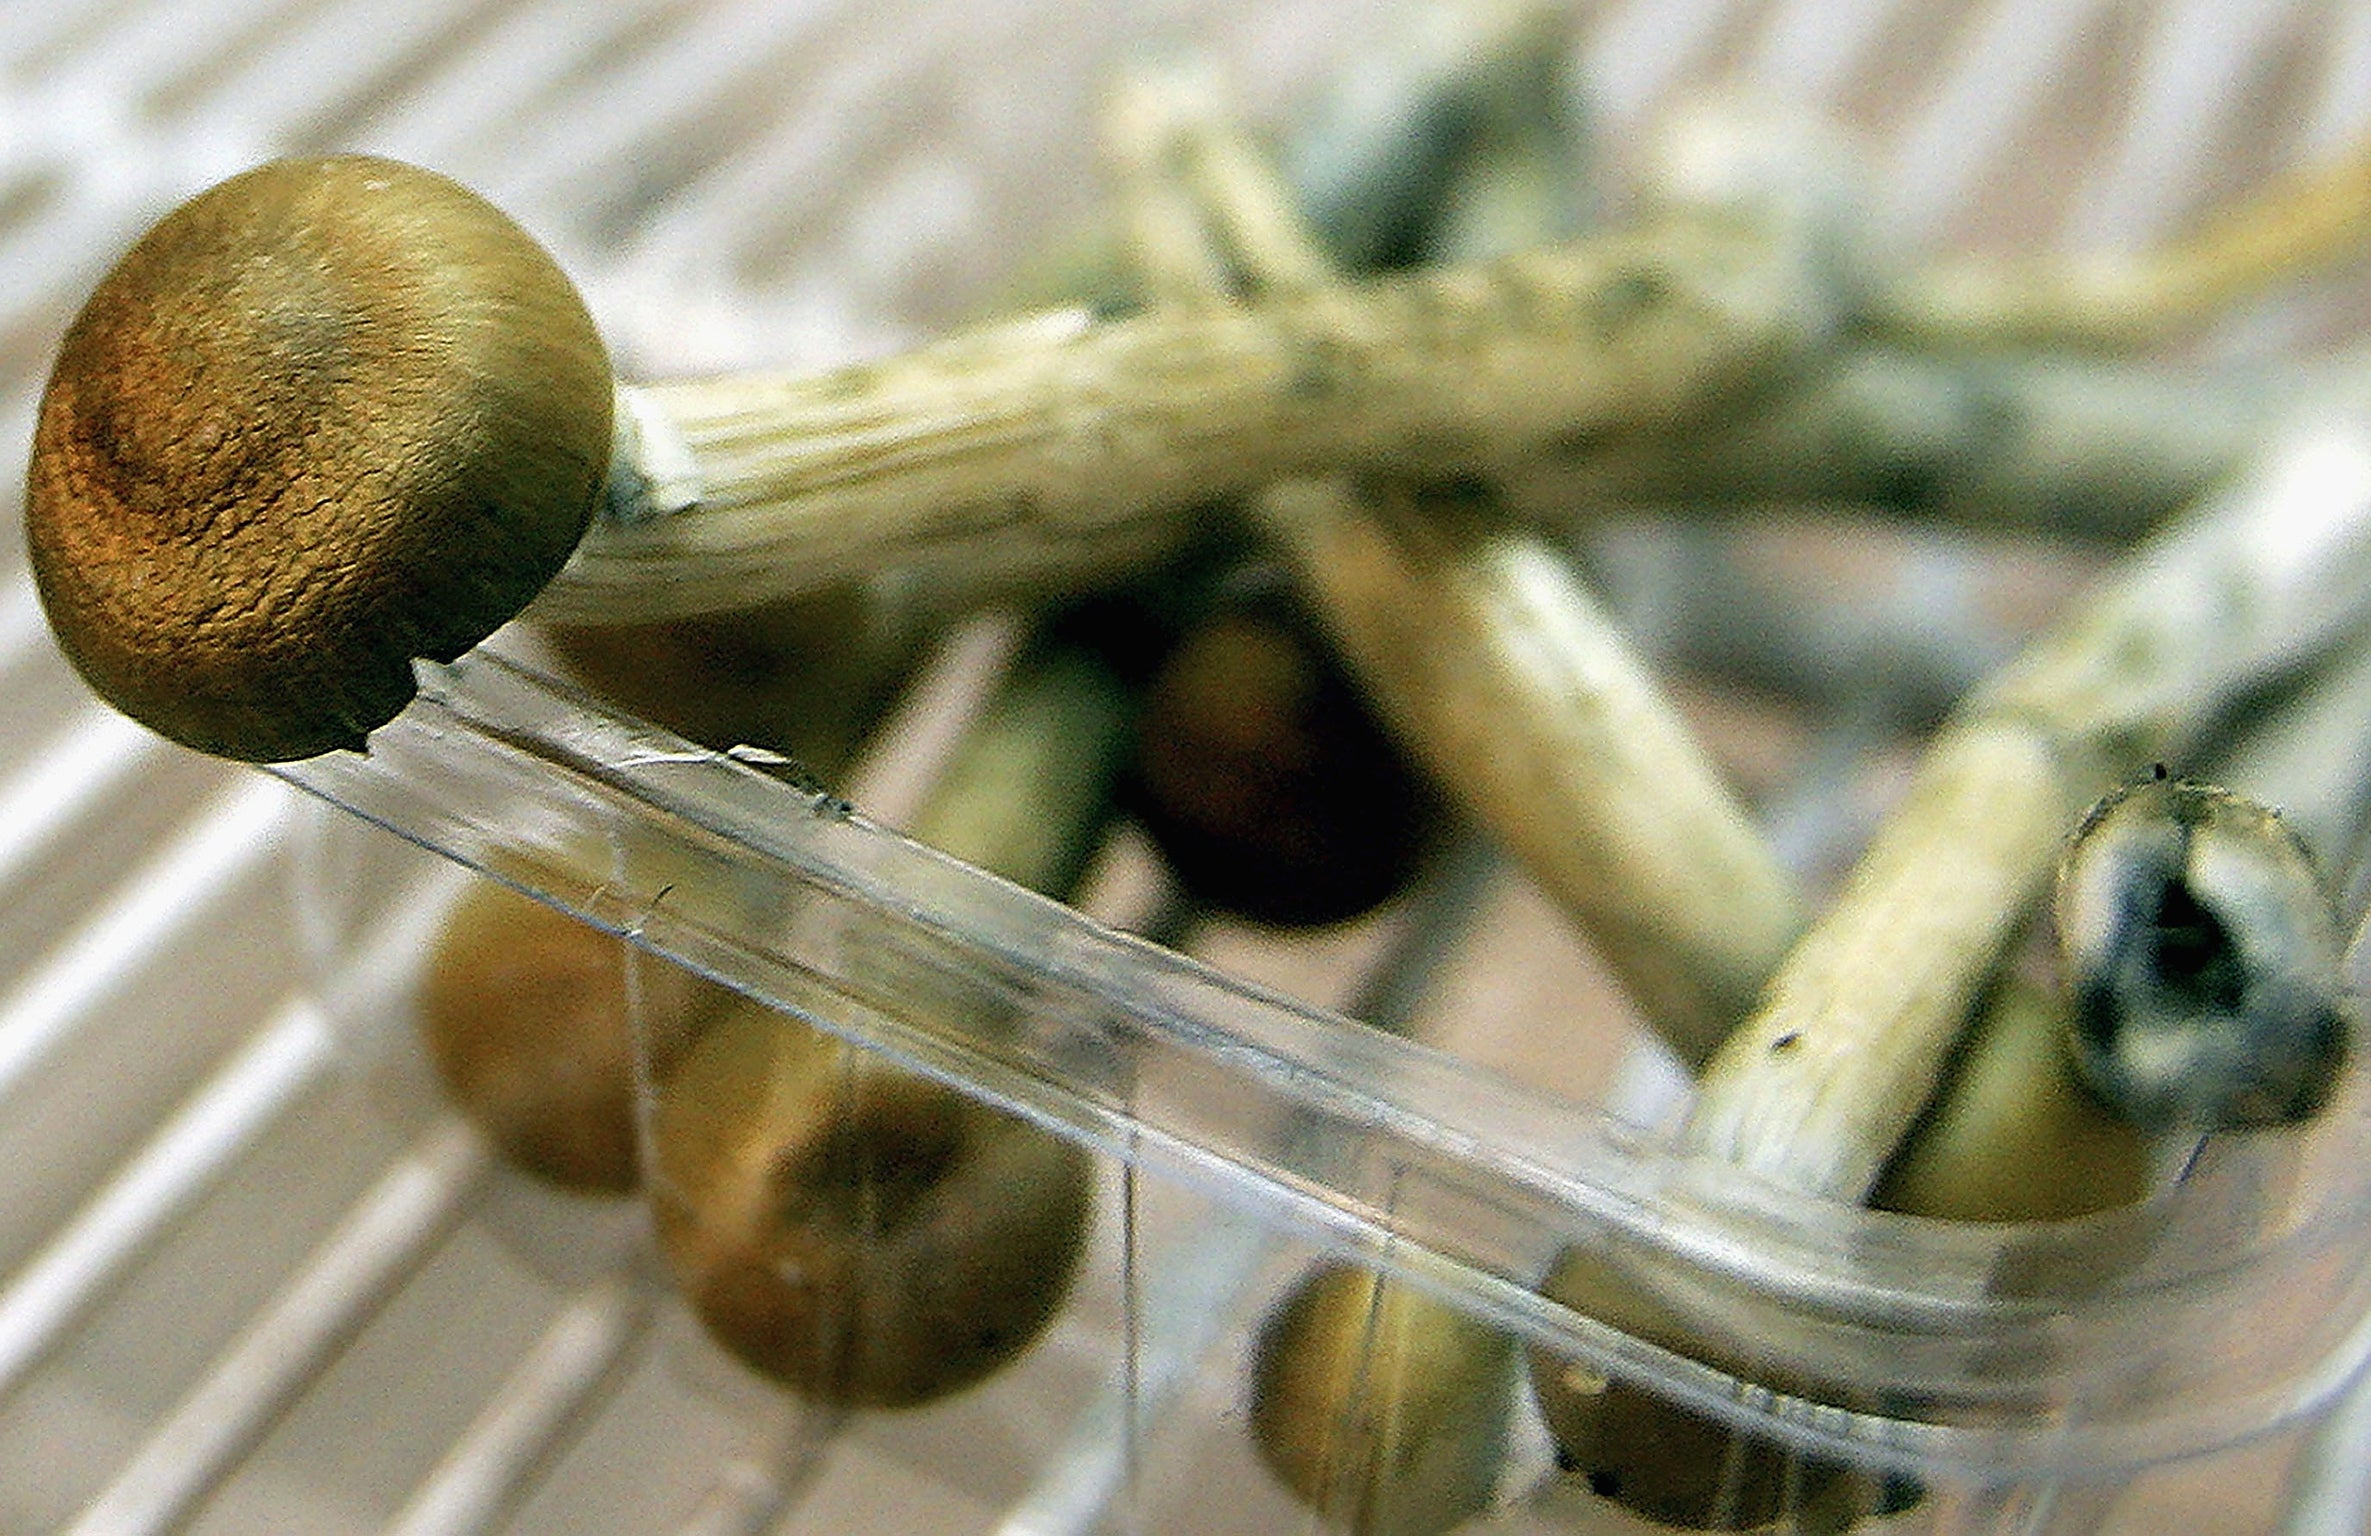 Magic mushrooms may ease anxiety and depression in cancer